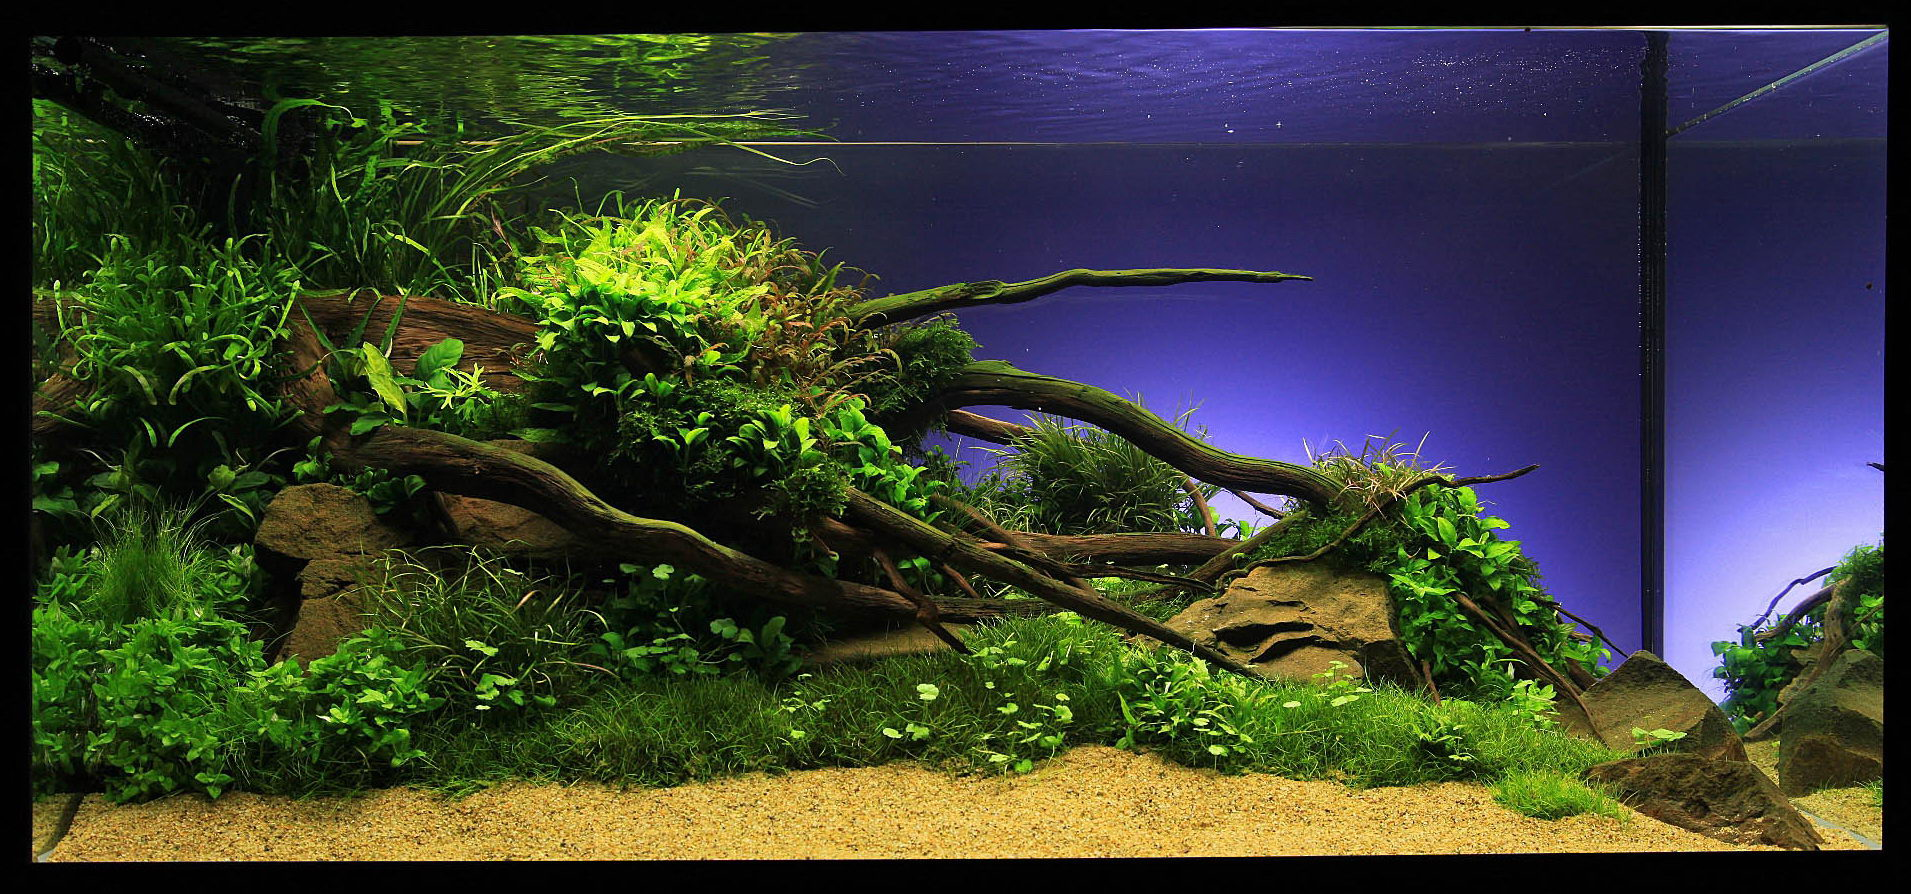 How To Set Up Small Living Room Marcel Dykierek And Aquascaping Aqua Rebell